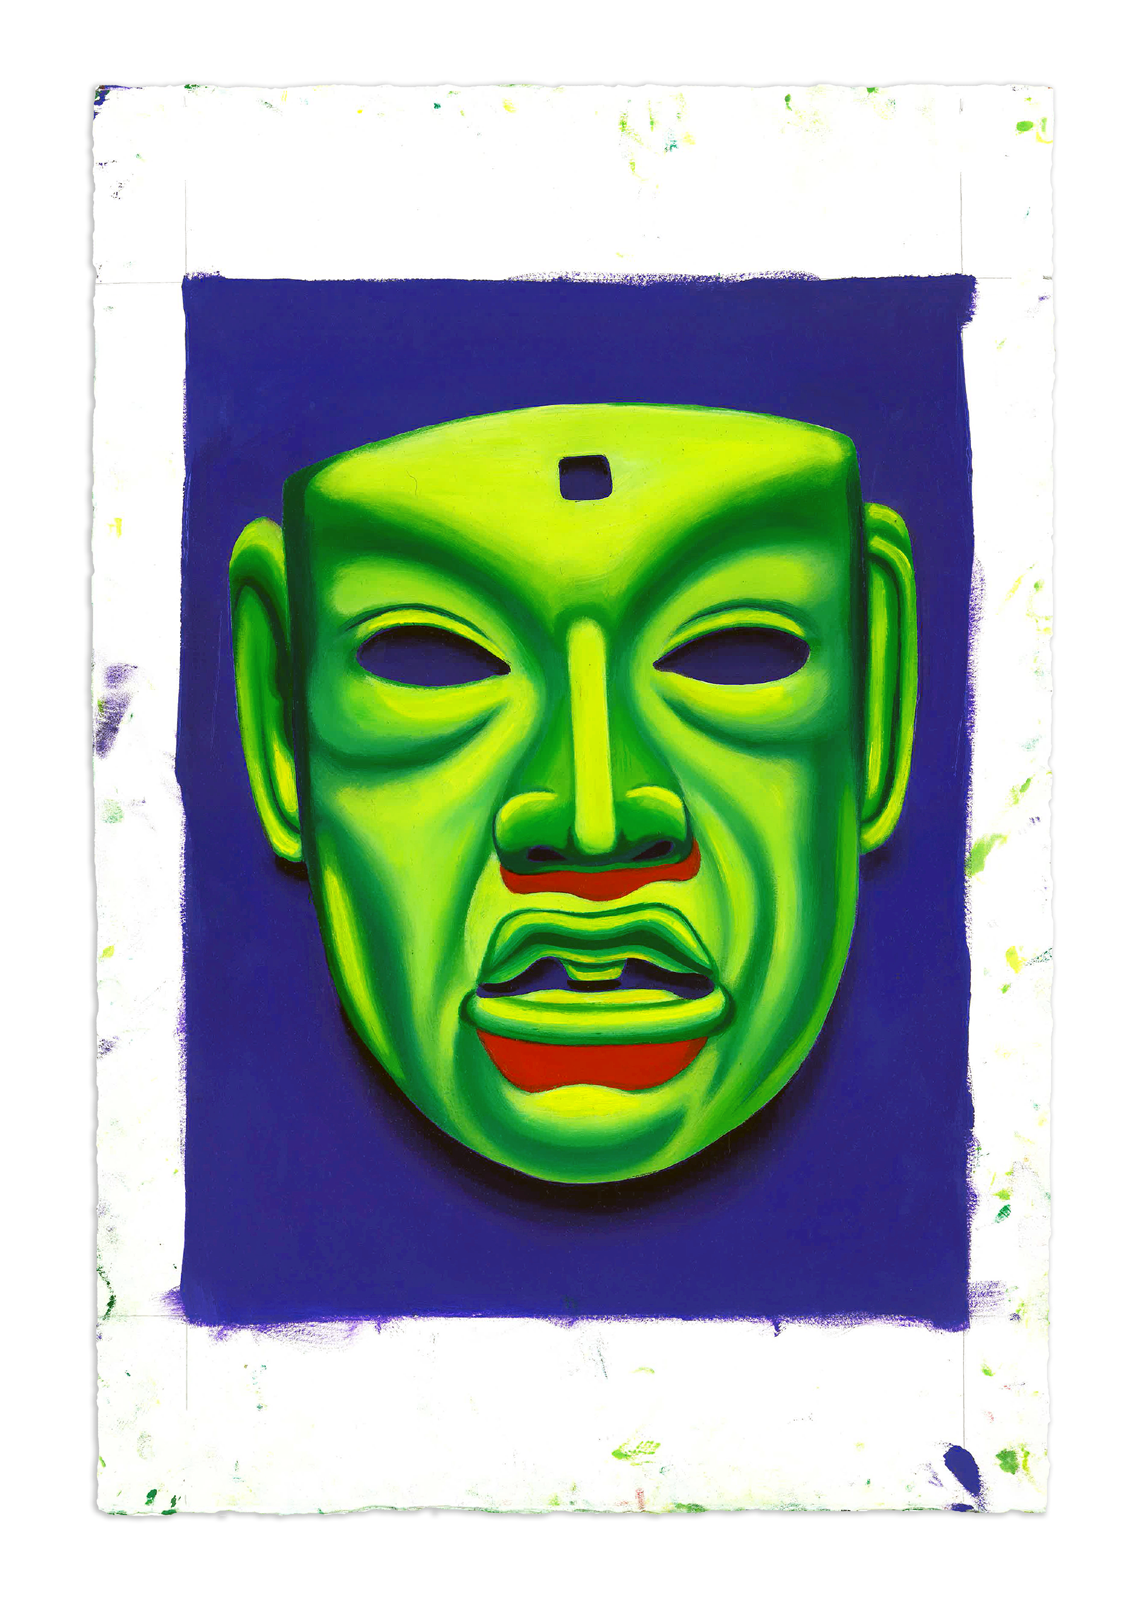 Jade Mask, Olmec - Oil at 12 x 16 in. on 22 x 15 in. BFK Rives